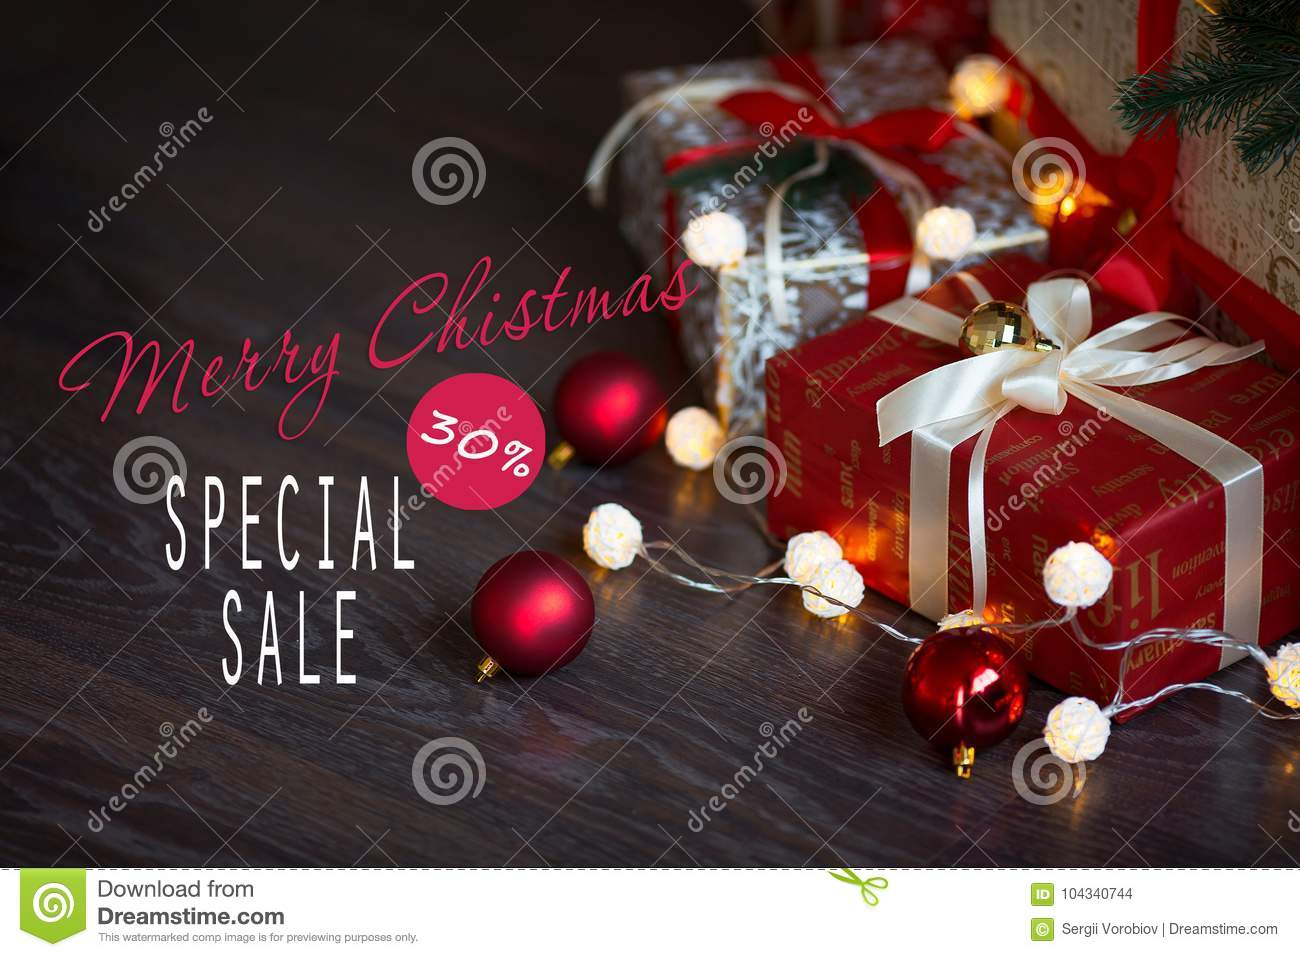 sales on christmas and new year holidays festive decoration with informative inscription of 30 percent - Christmas Eve Sales